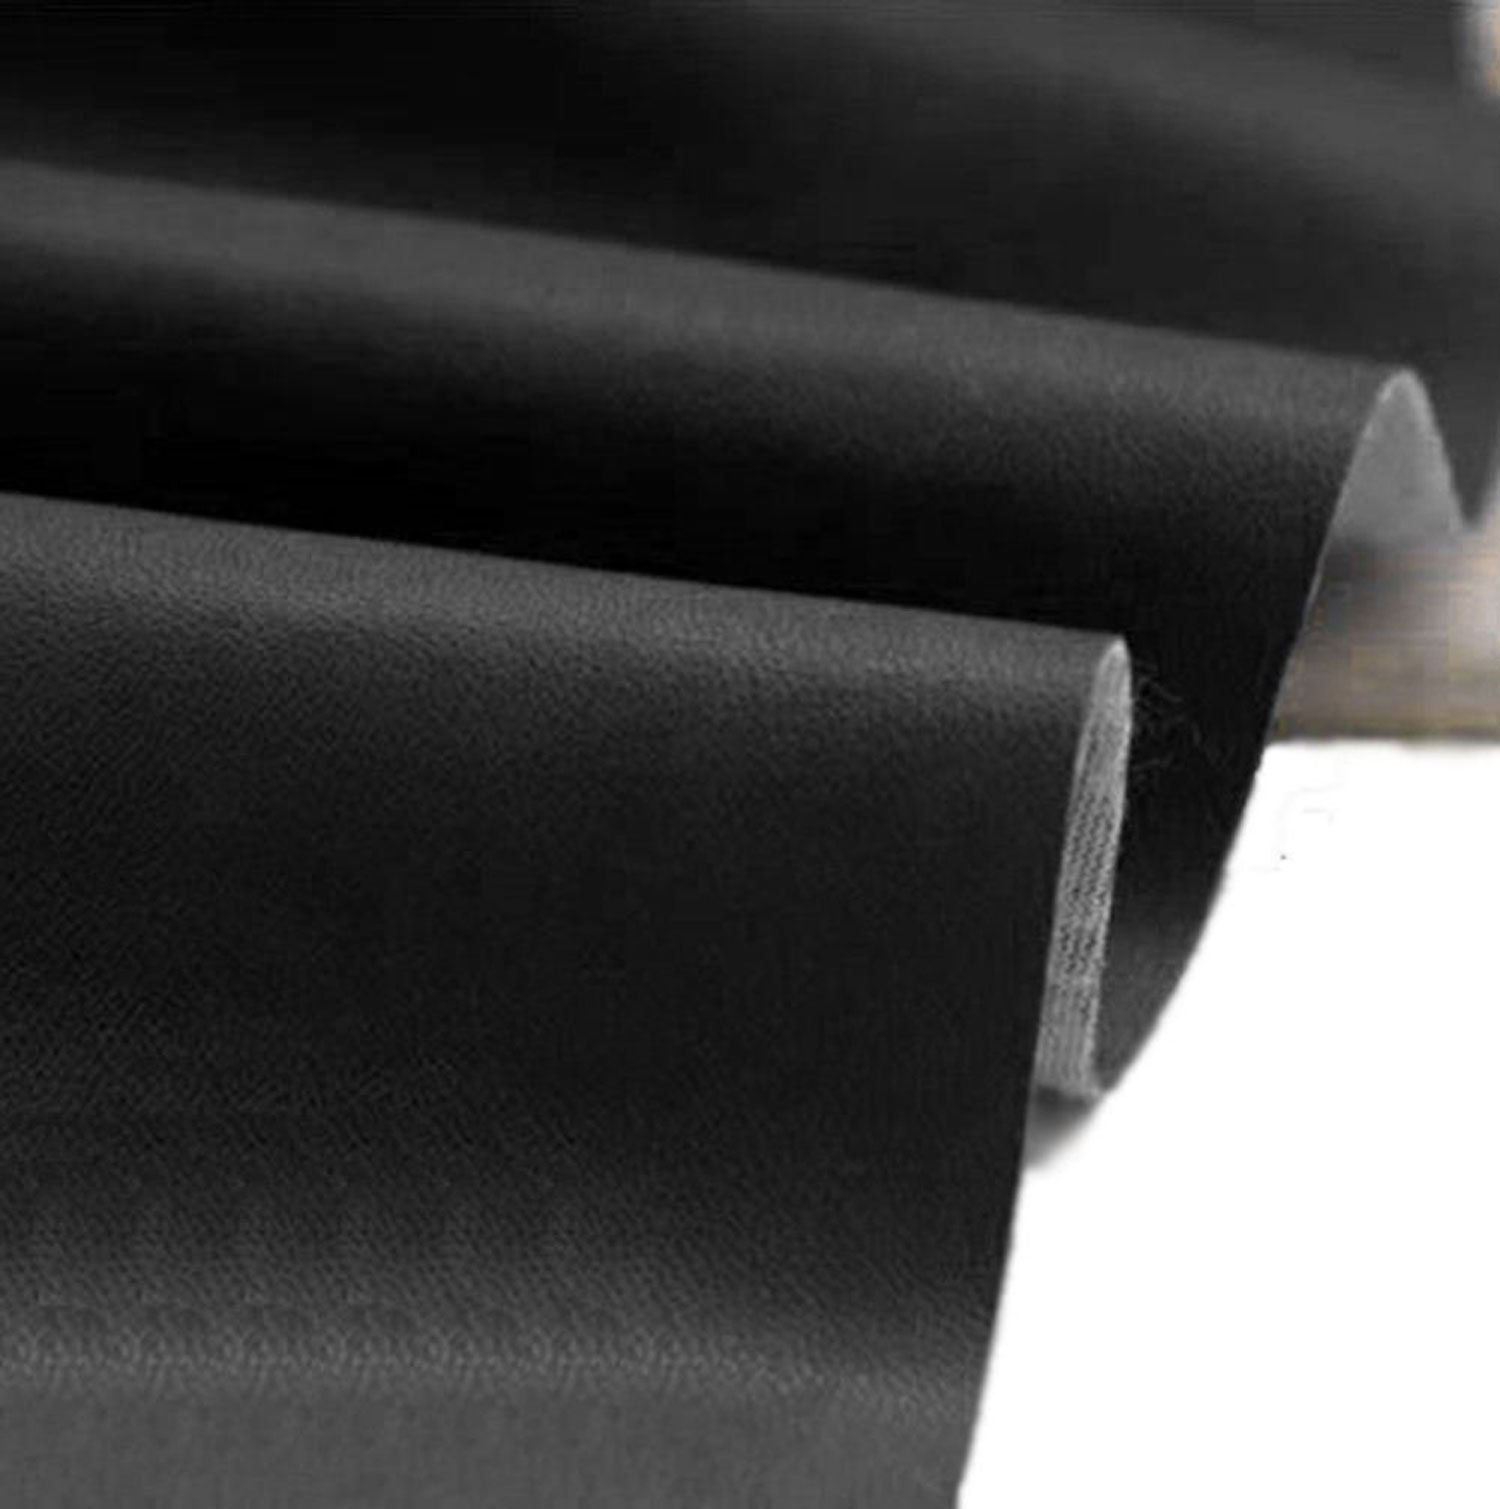 54'' Wide Black Fabric FAUX LEATHER LEATHERETTE MATERIAL HEAVY FEEL PVC VINYL UPHOLSTERY Fabric by The Yard